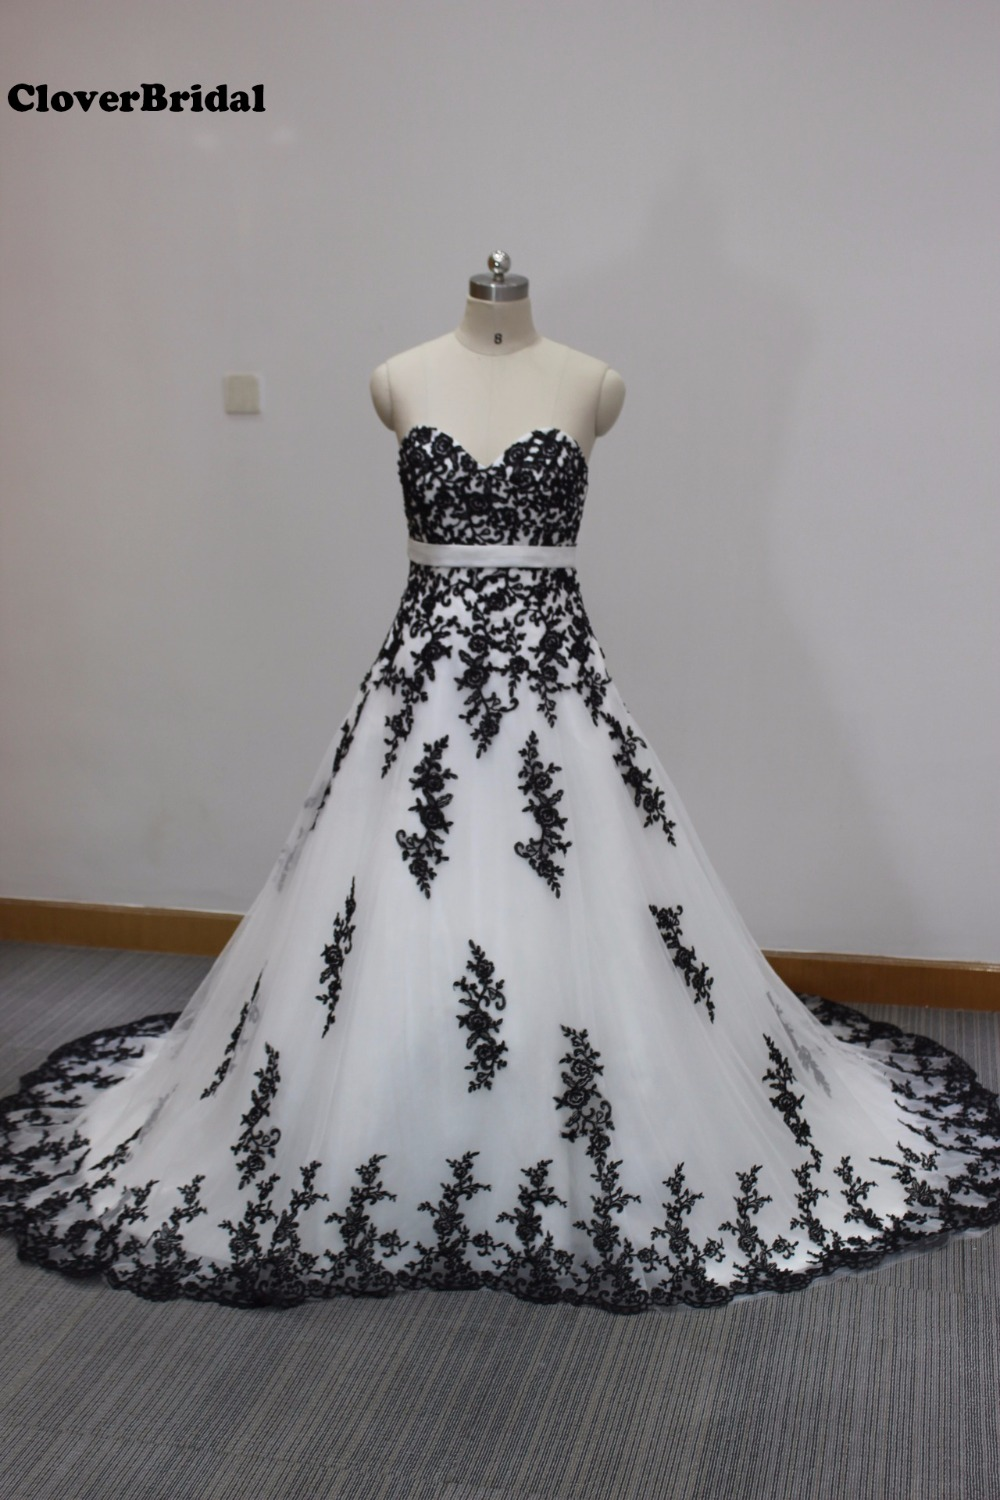 Us 1680 Actual Pieces Black Lace Appliques White Tulle Sweetheart A Line Wedding Dress Black White Classic In Wedding Dresses From Weddings